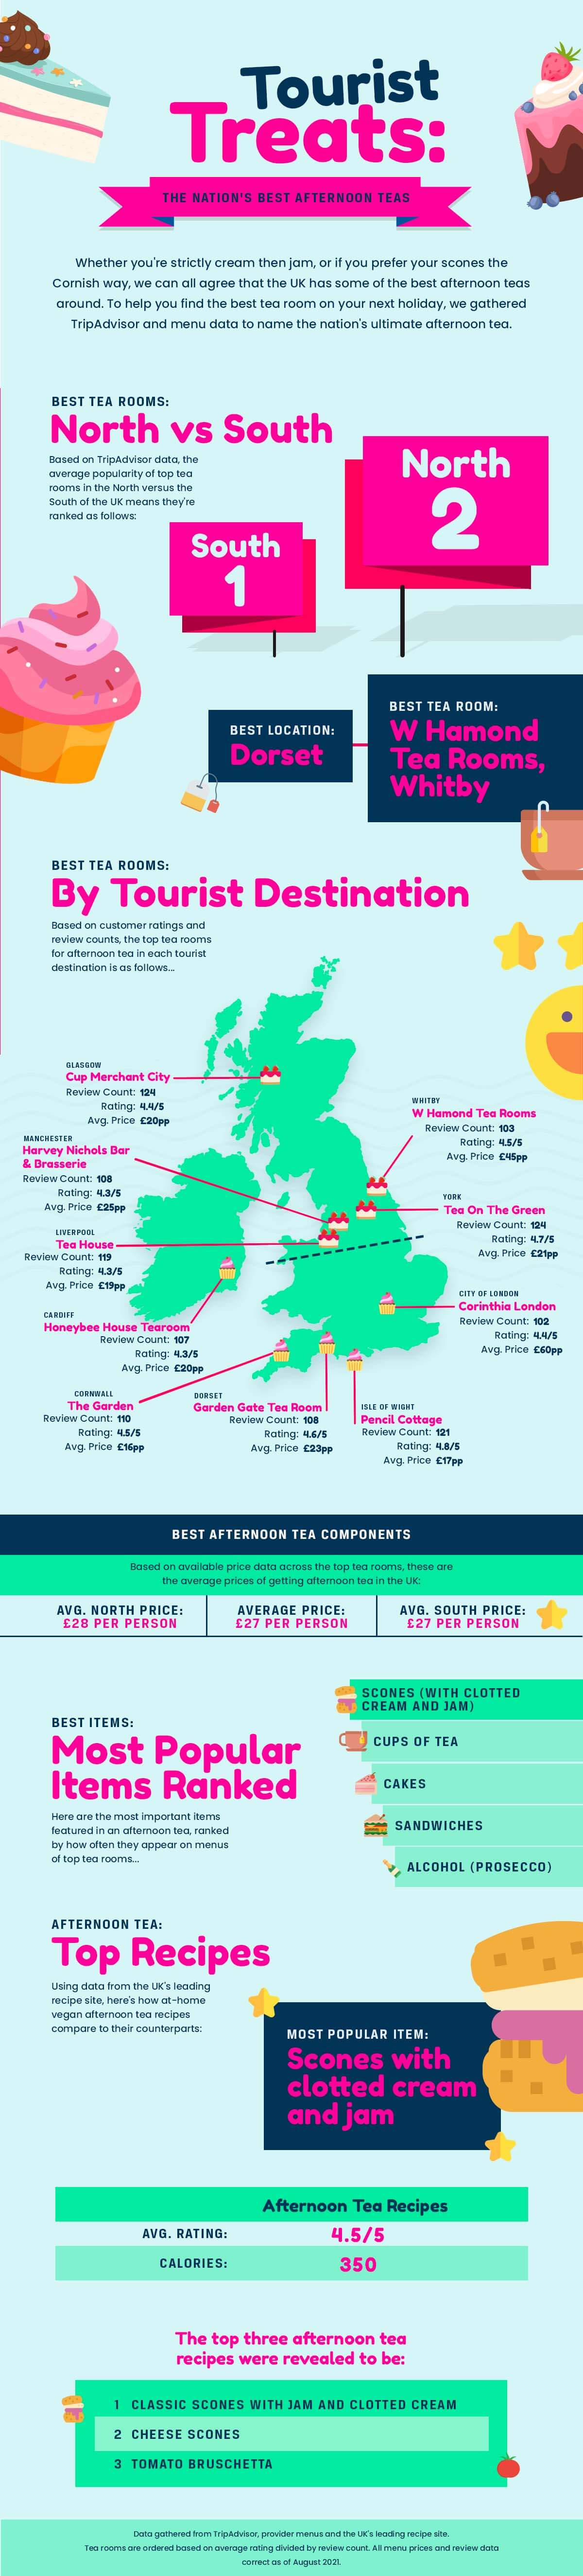 The UK's best afternoon teas infographic